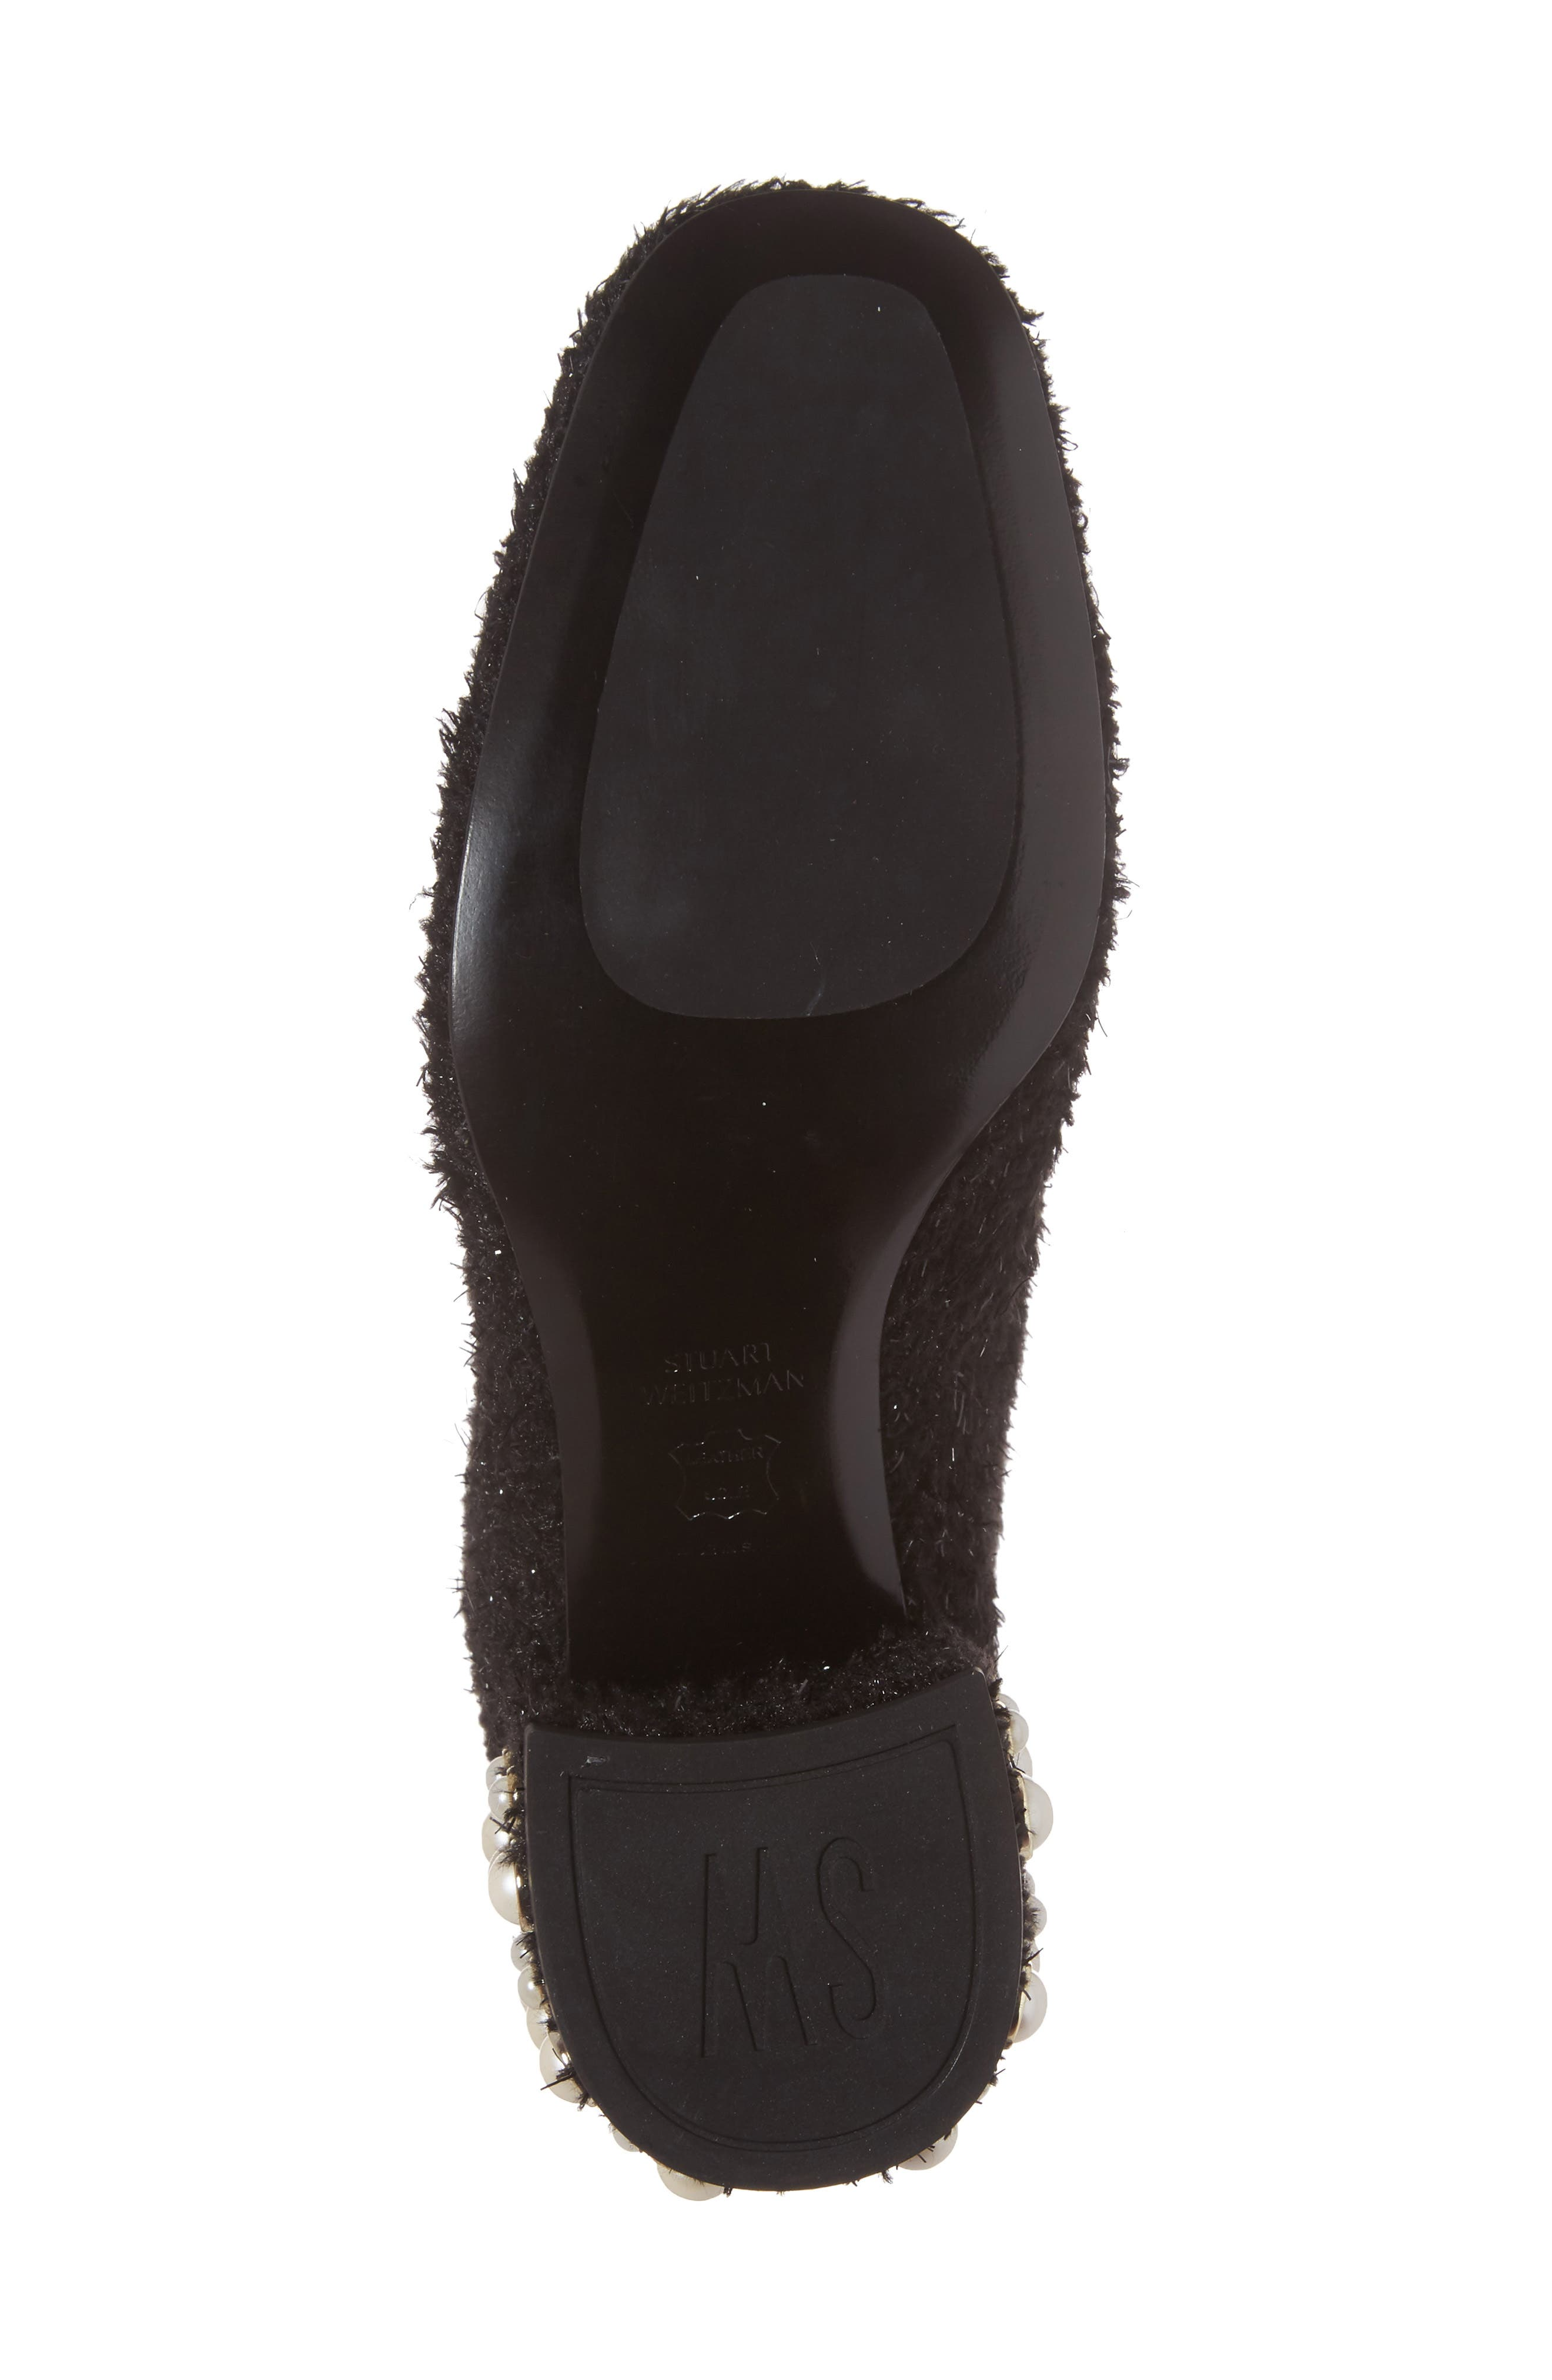 Pearlbacari Bootie,                             Alternate thumbnail 6, color,                             Black Boucle